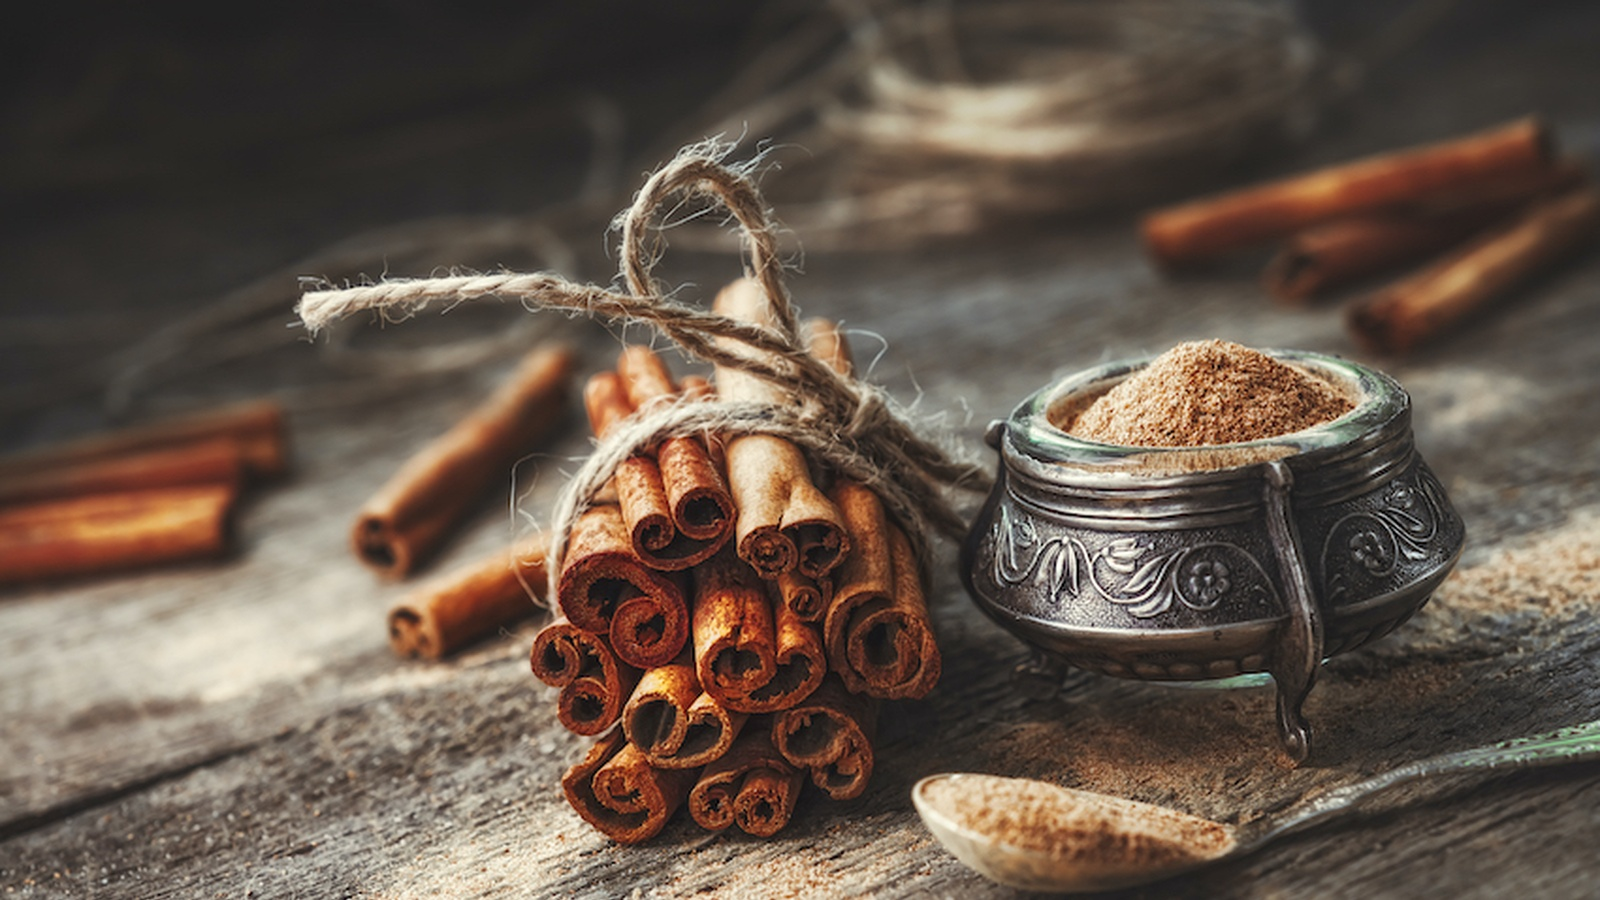 5 Health Benefits of Cinnamon and Our Favorite Recipes